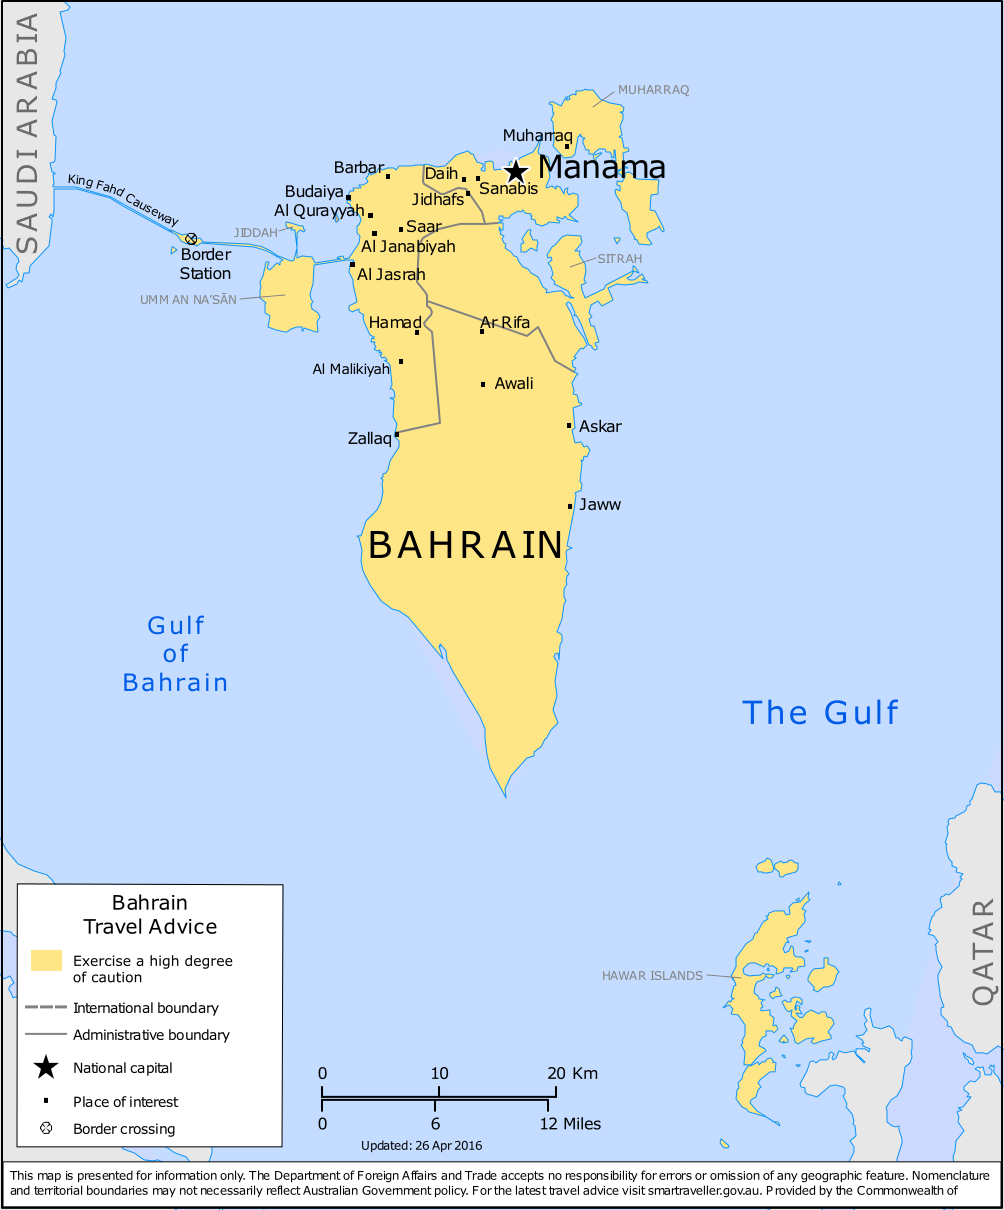 Bahrain-Travel-Insurance | AARDY.com